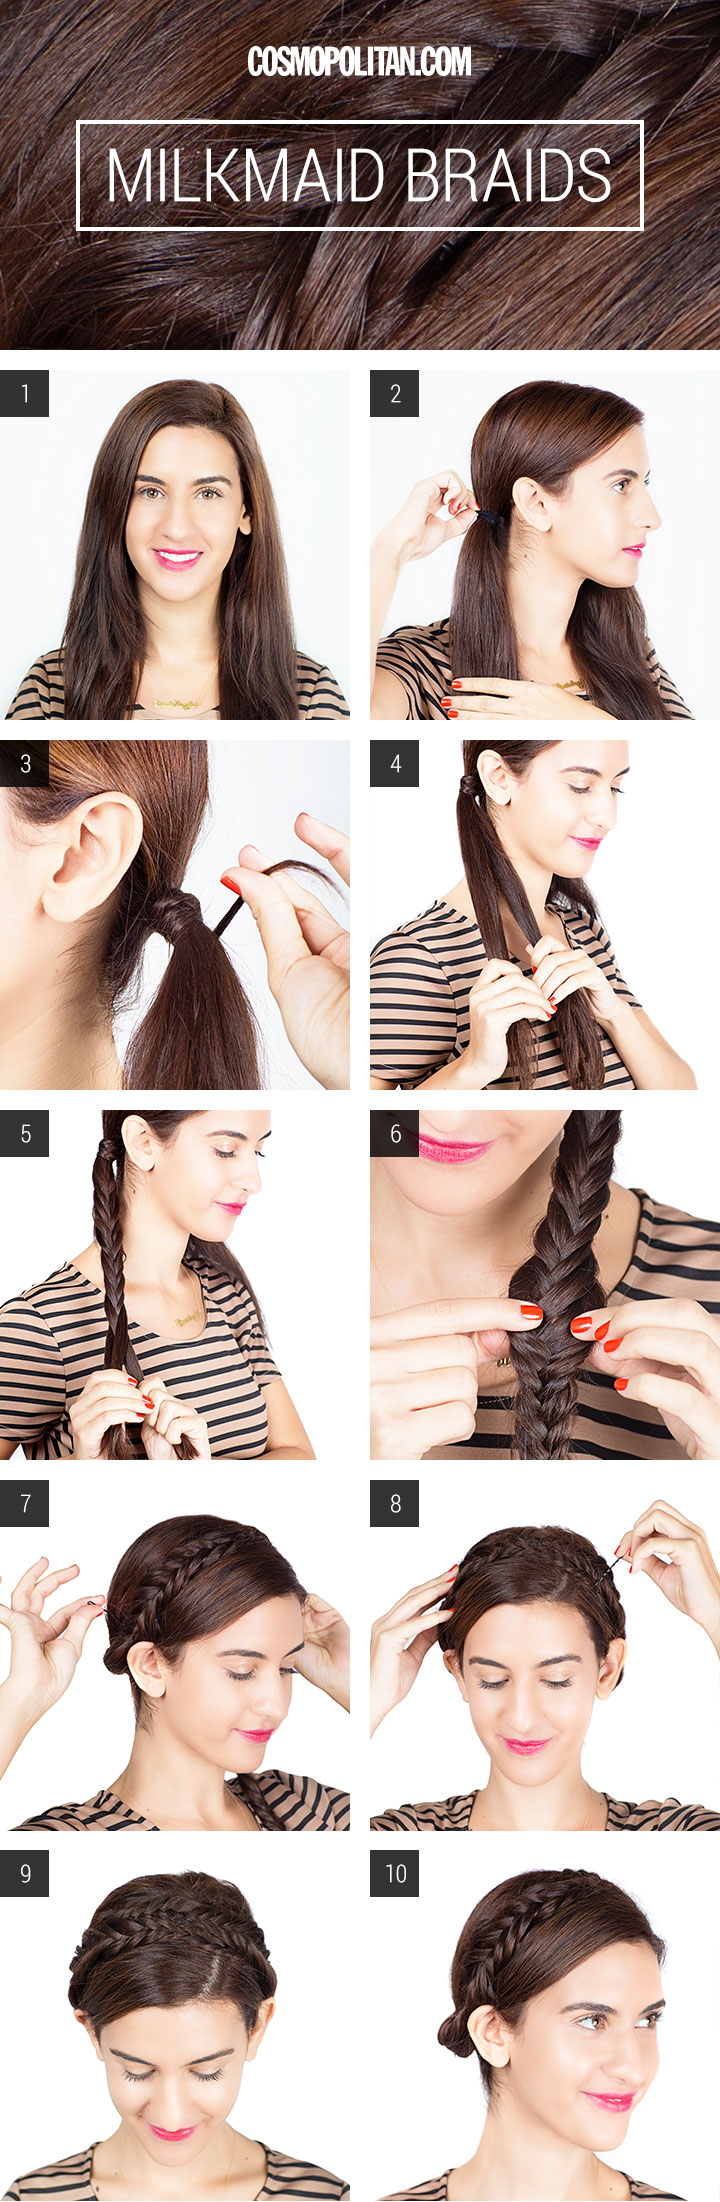 Magnificent Hair Tutorials 15 Simple Easy Hairstyles You Should Not Miss Hairstyles For Women Draintrainus